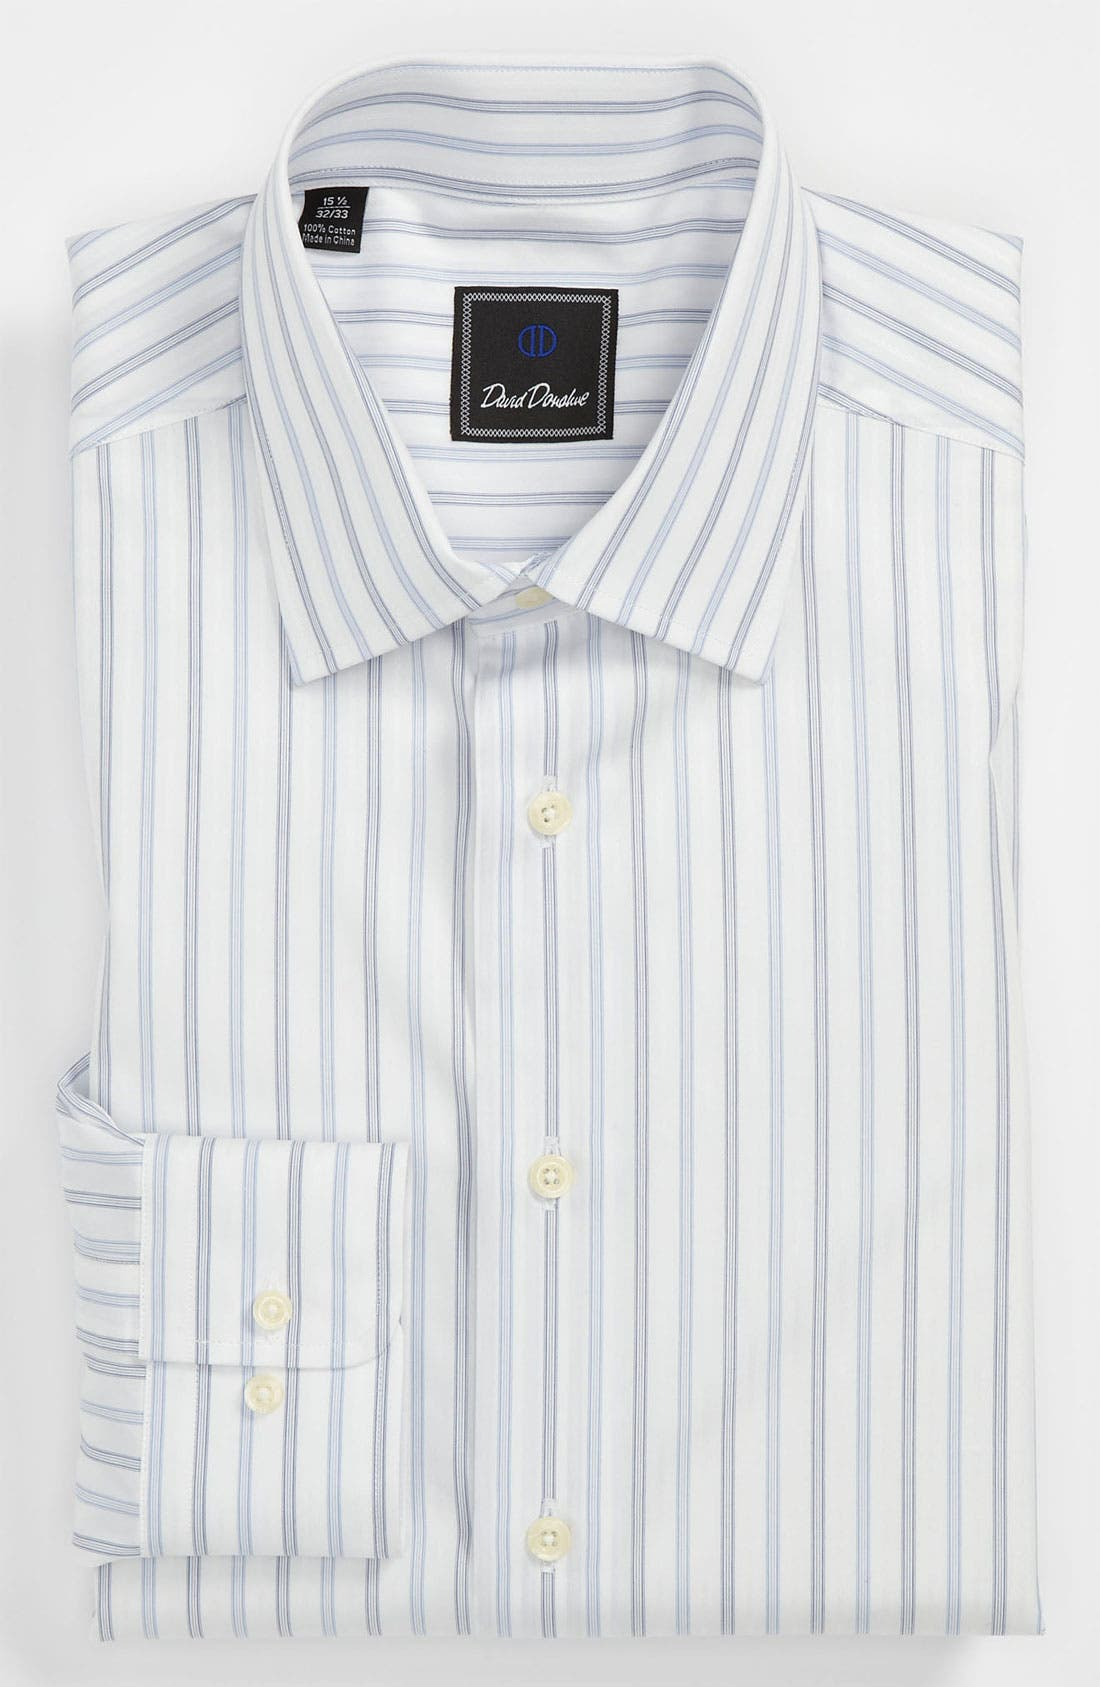 Main Image - David Donahue Regular Fit Dress Shirt